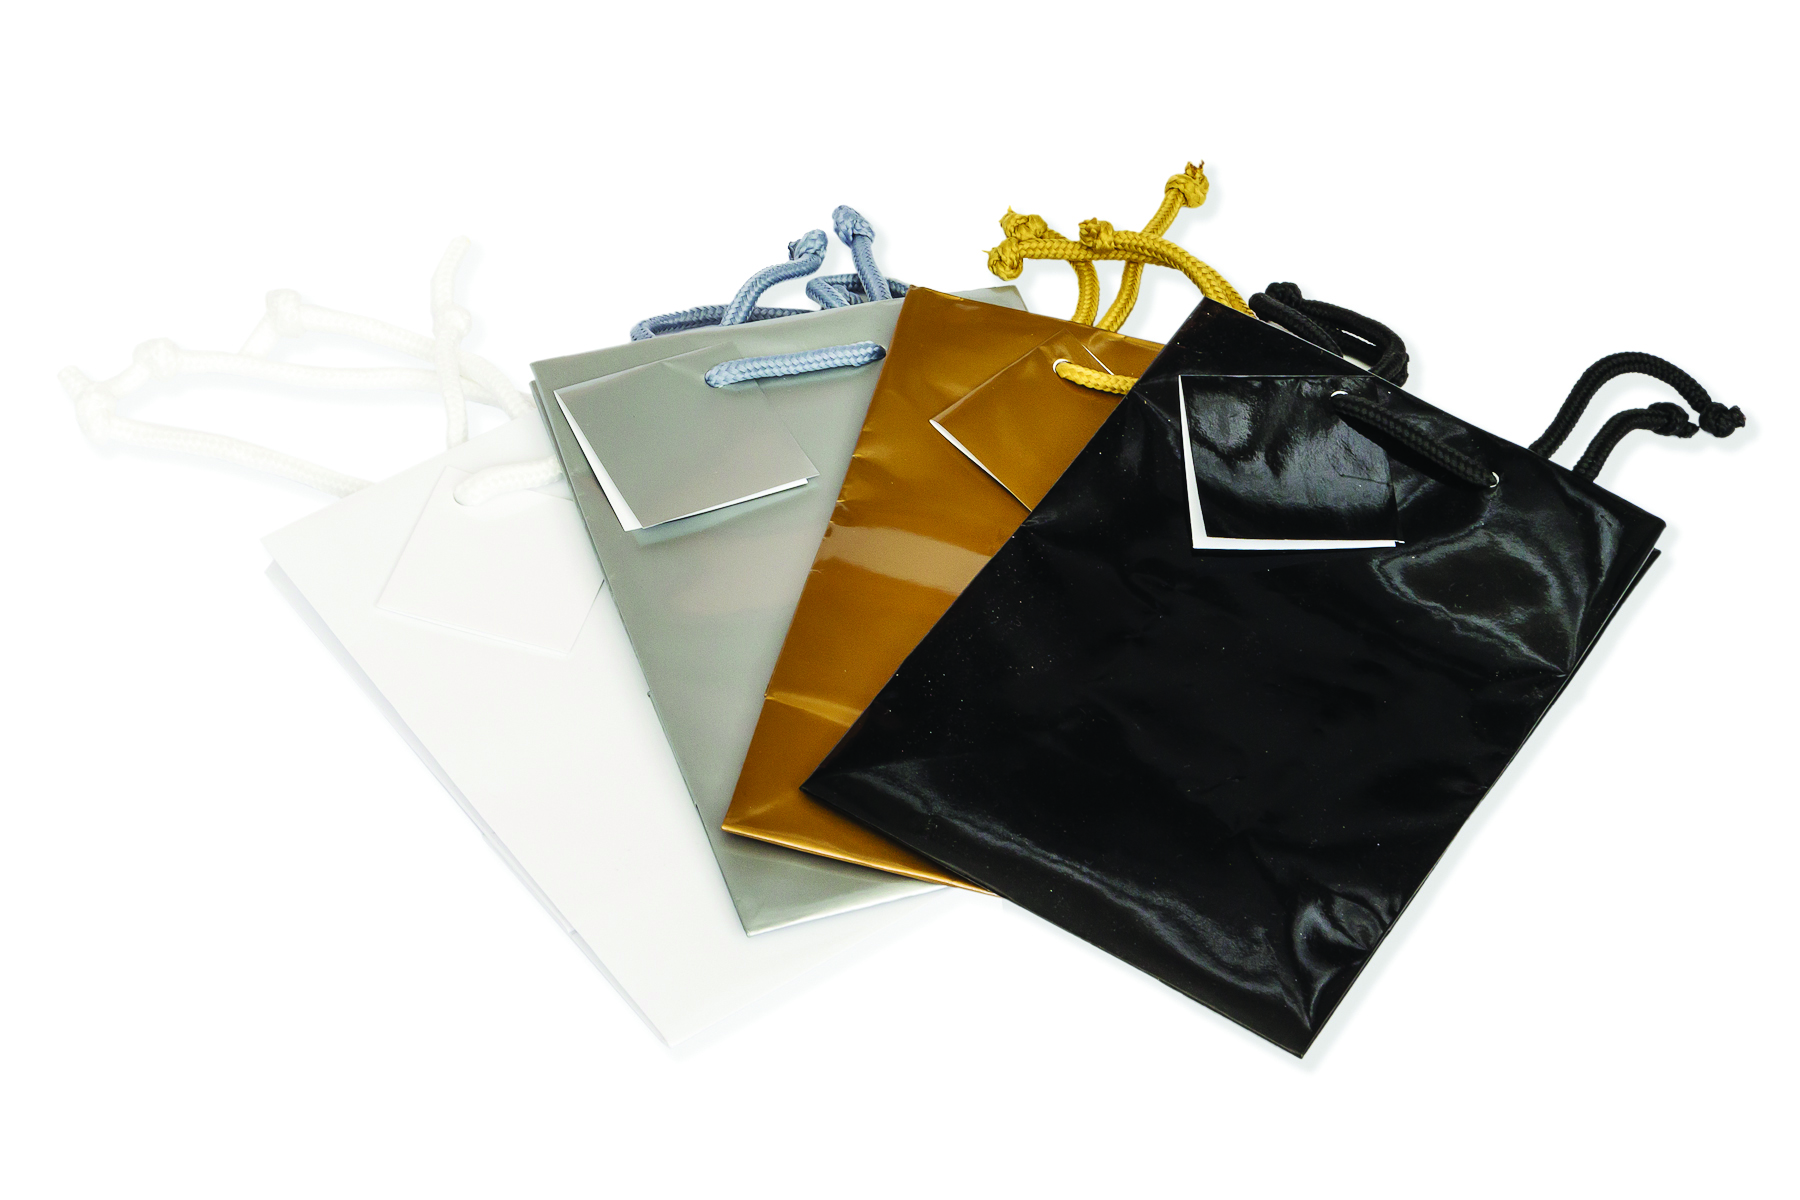 Large Tote Bags 255 X 205 X 400mm Image